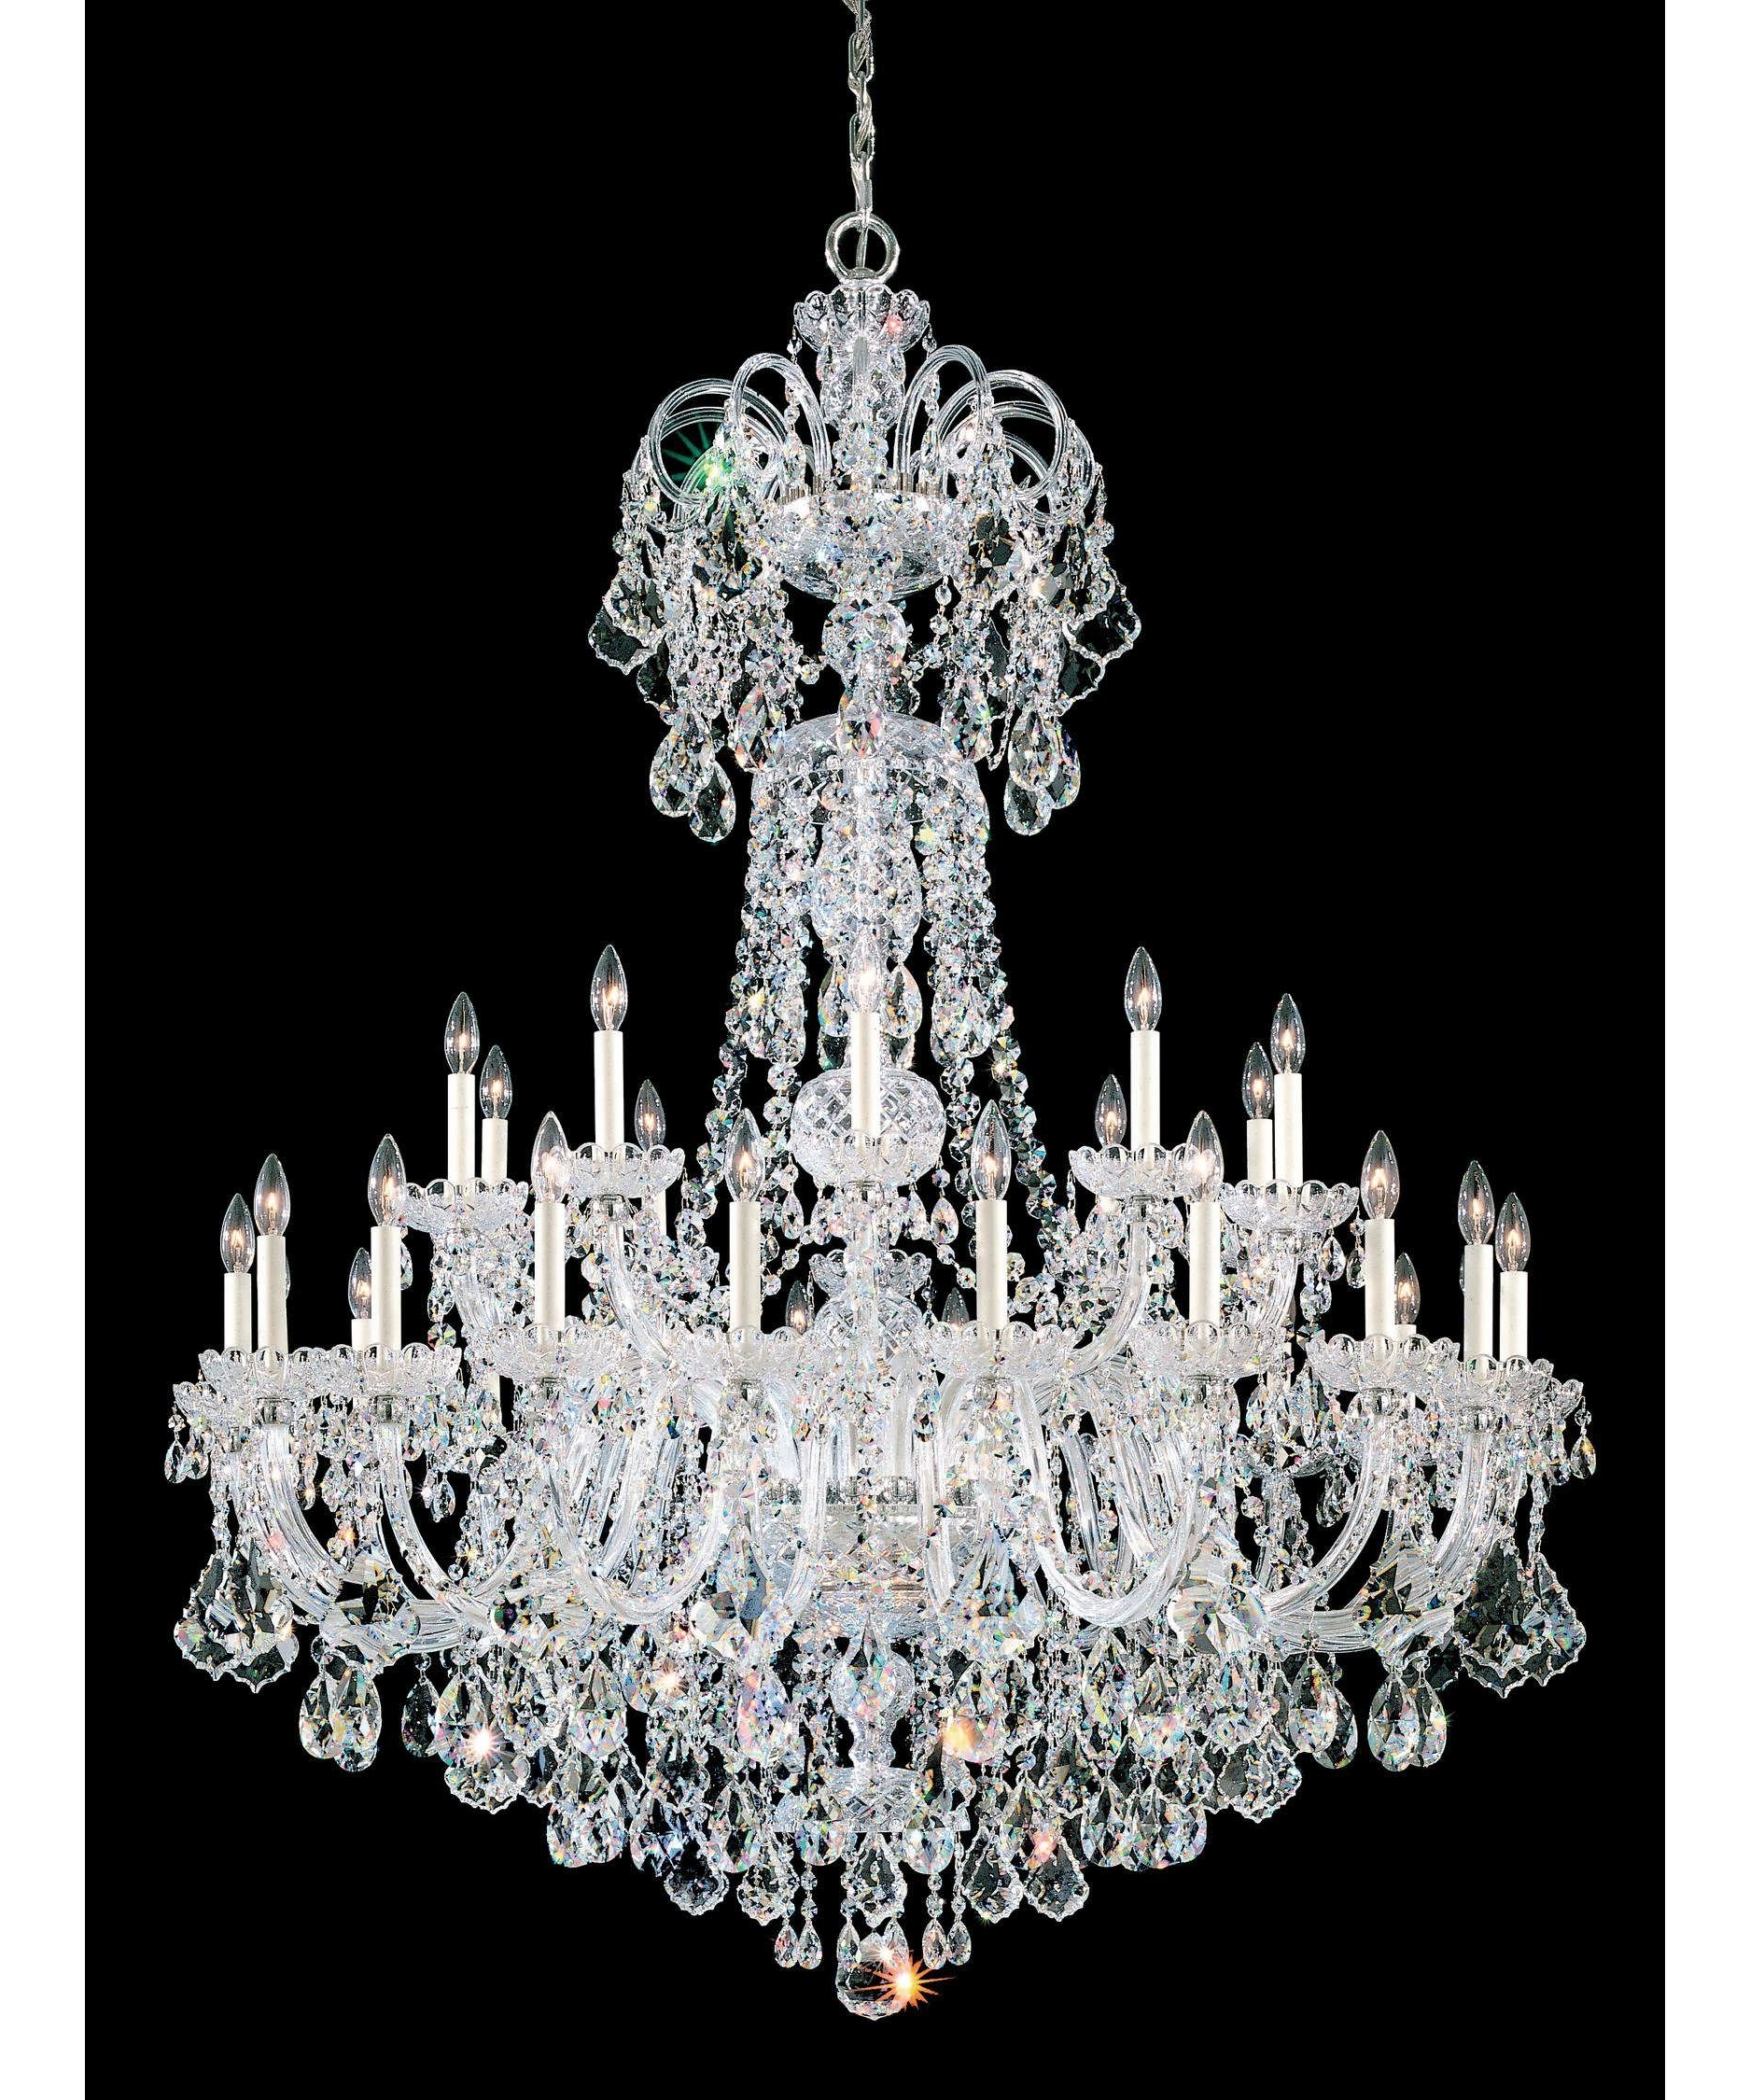 Acrylic Chandeliers Pertaining To Most Up To Date Chandelier : Beach Chandelier Murano Glass Chandelier Italian (Gallery 11 of 20)